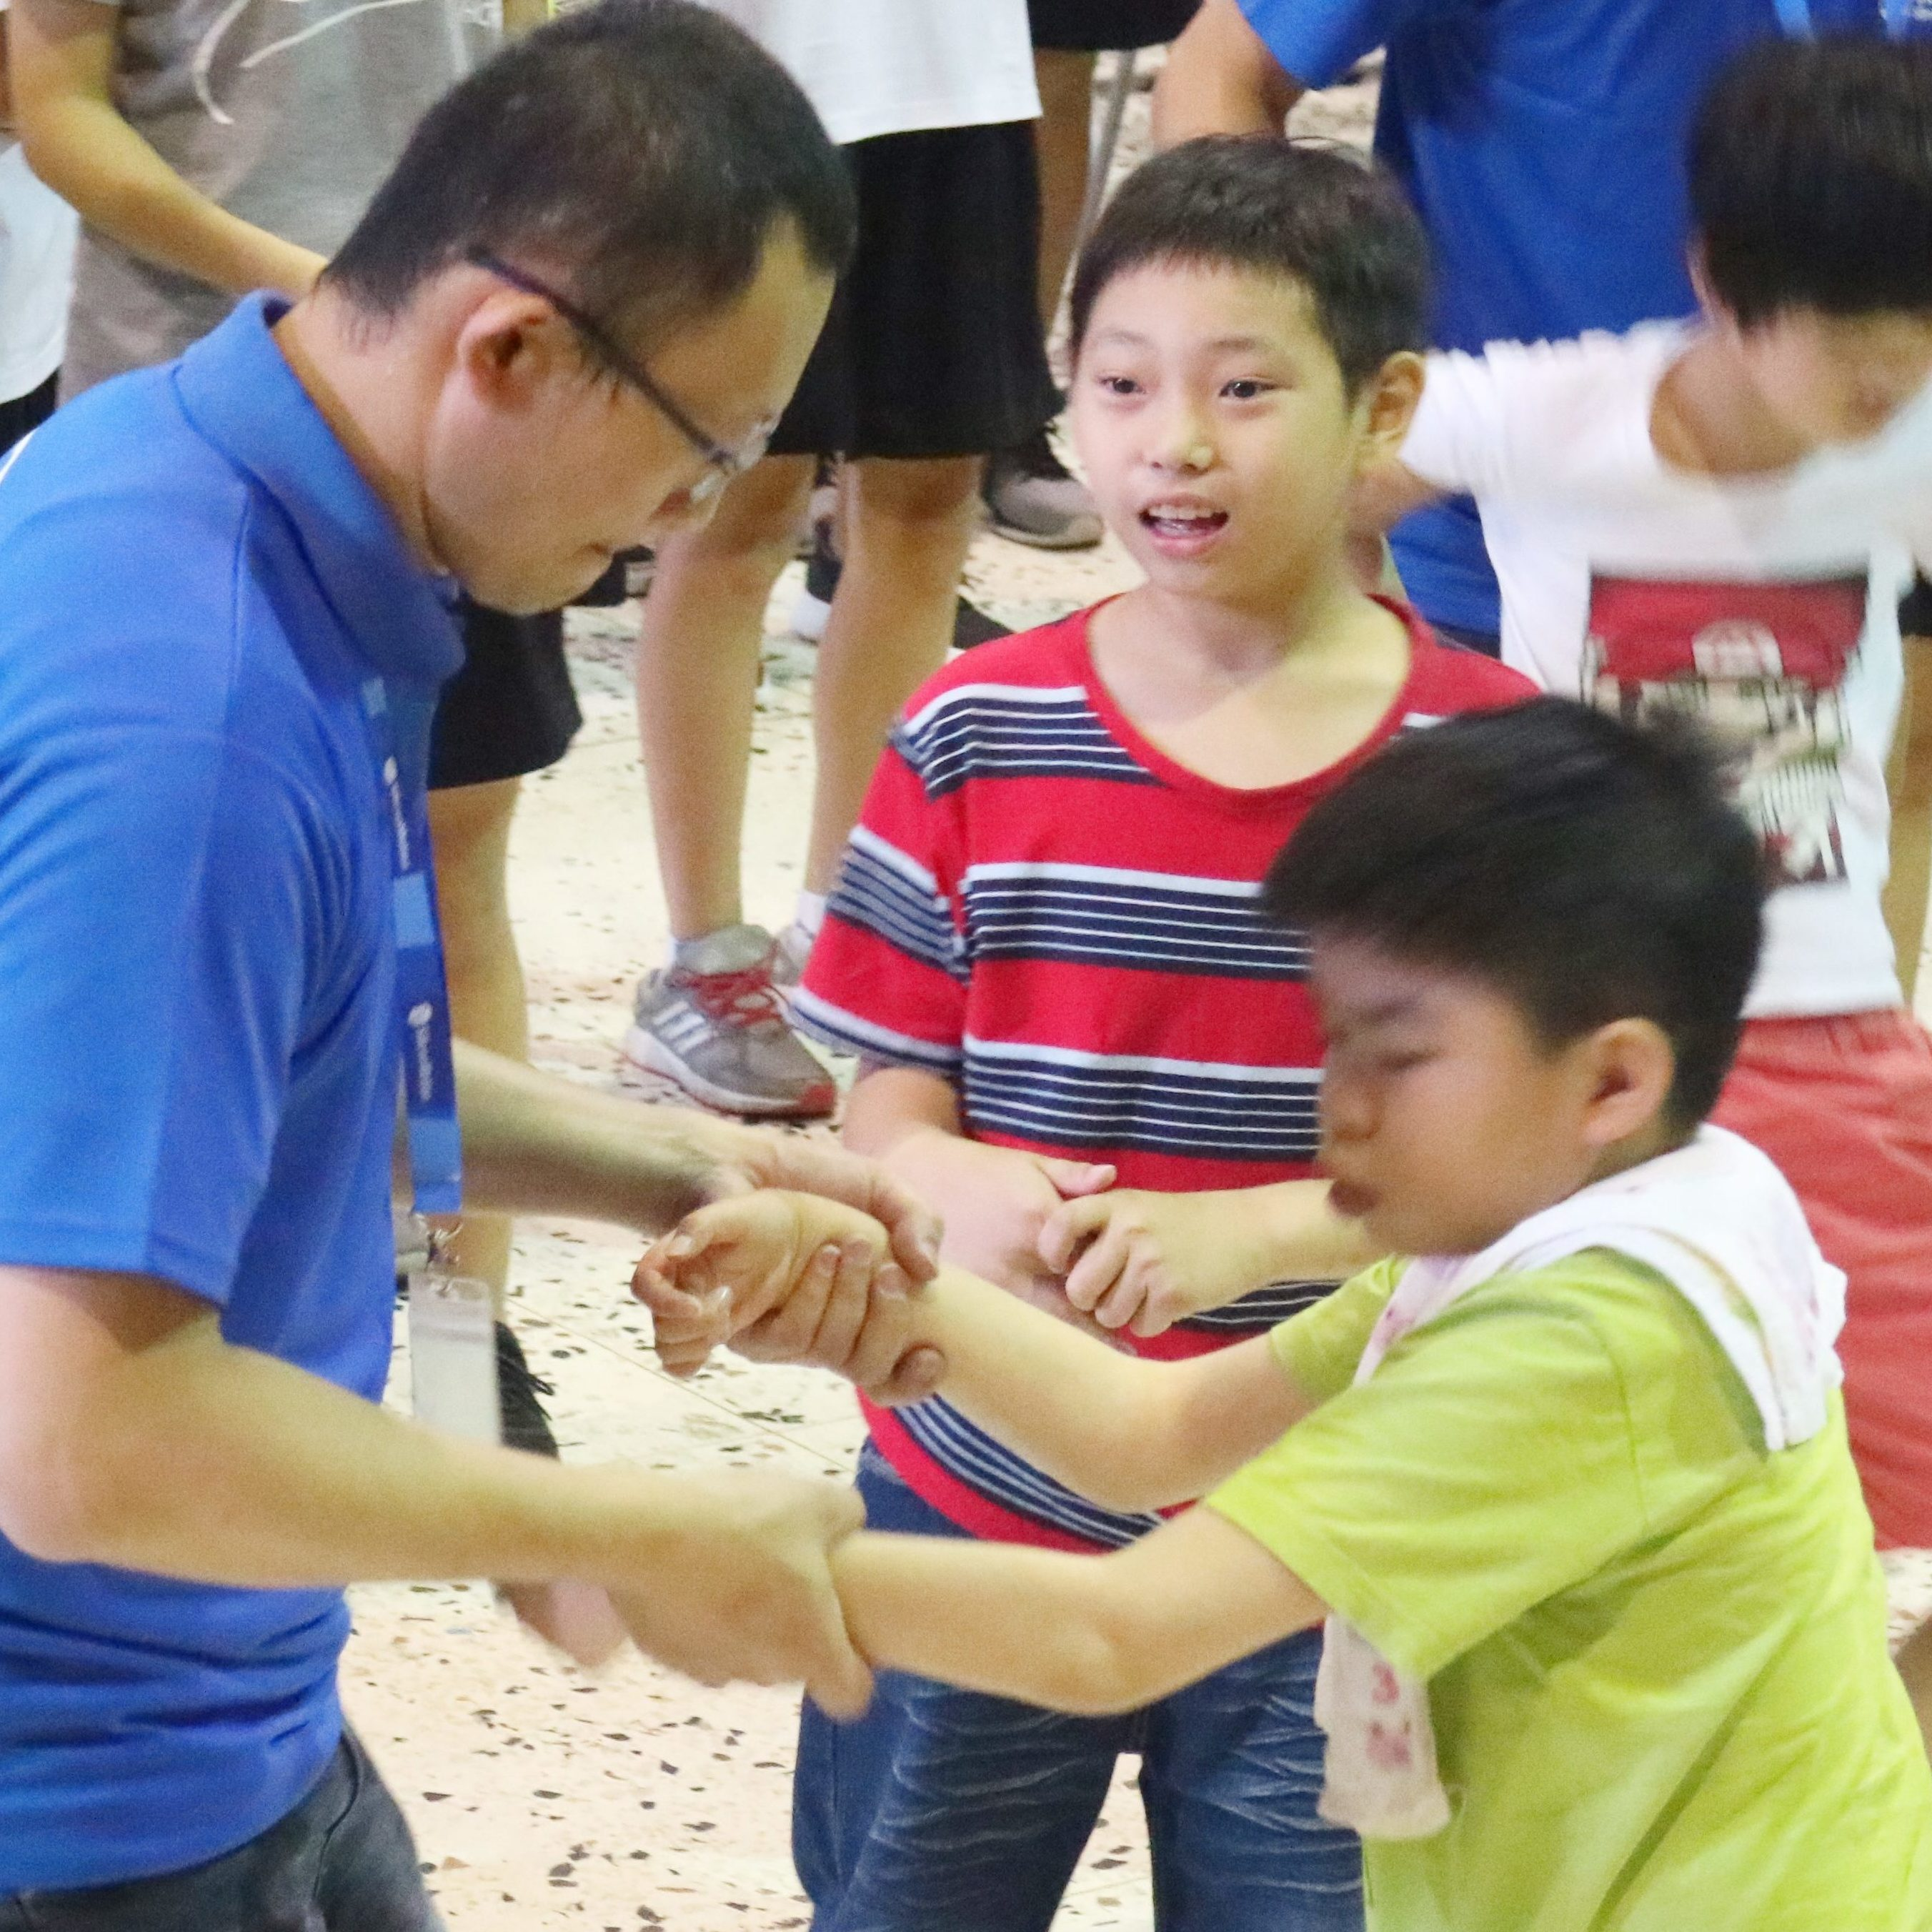 Students of Hsinchu Senior High School Played Interaction Game with Those from Syin-Lu Social Welfare Foundation